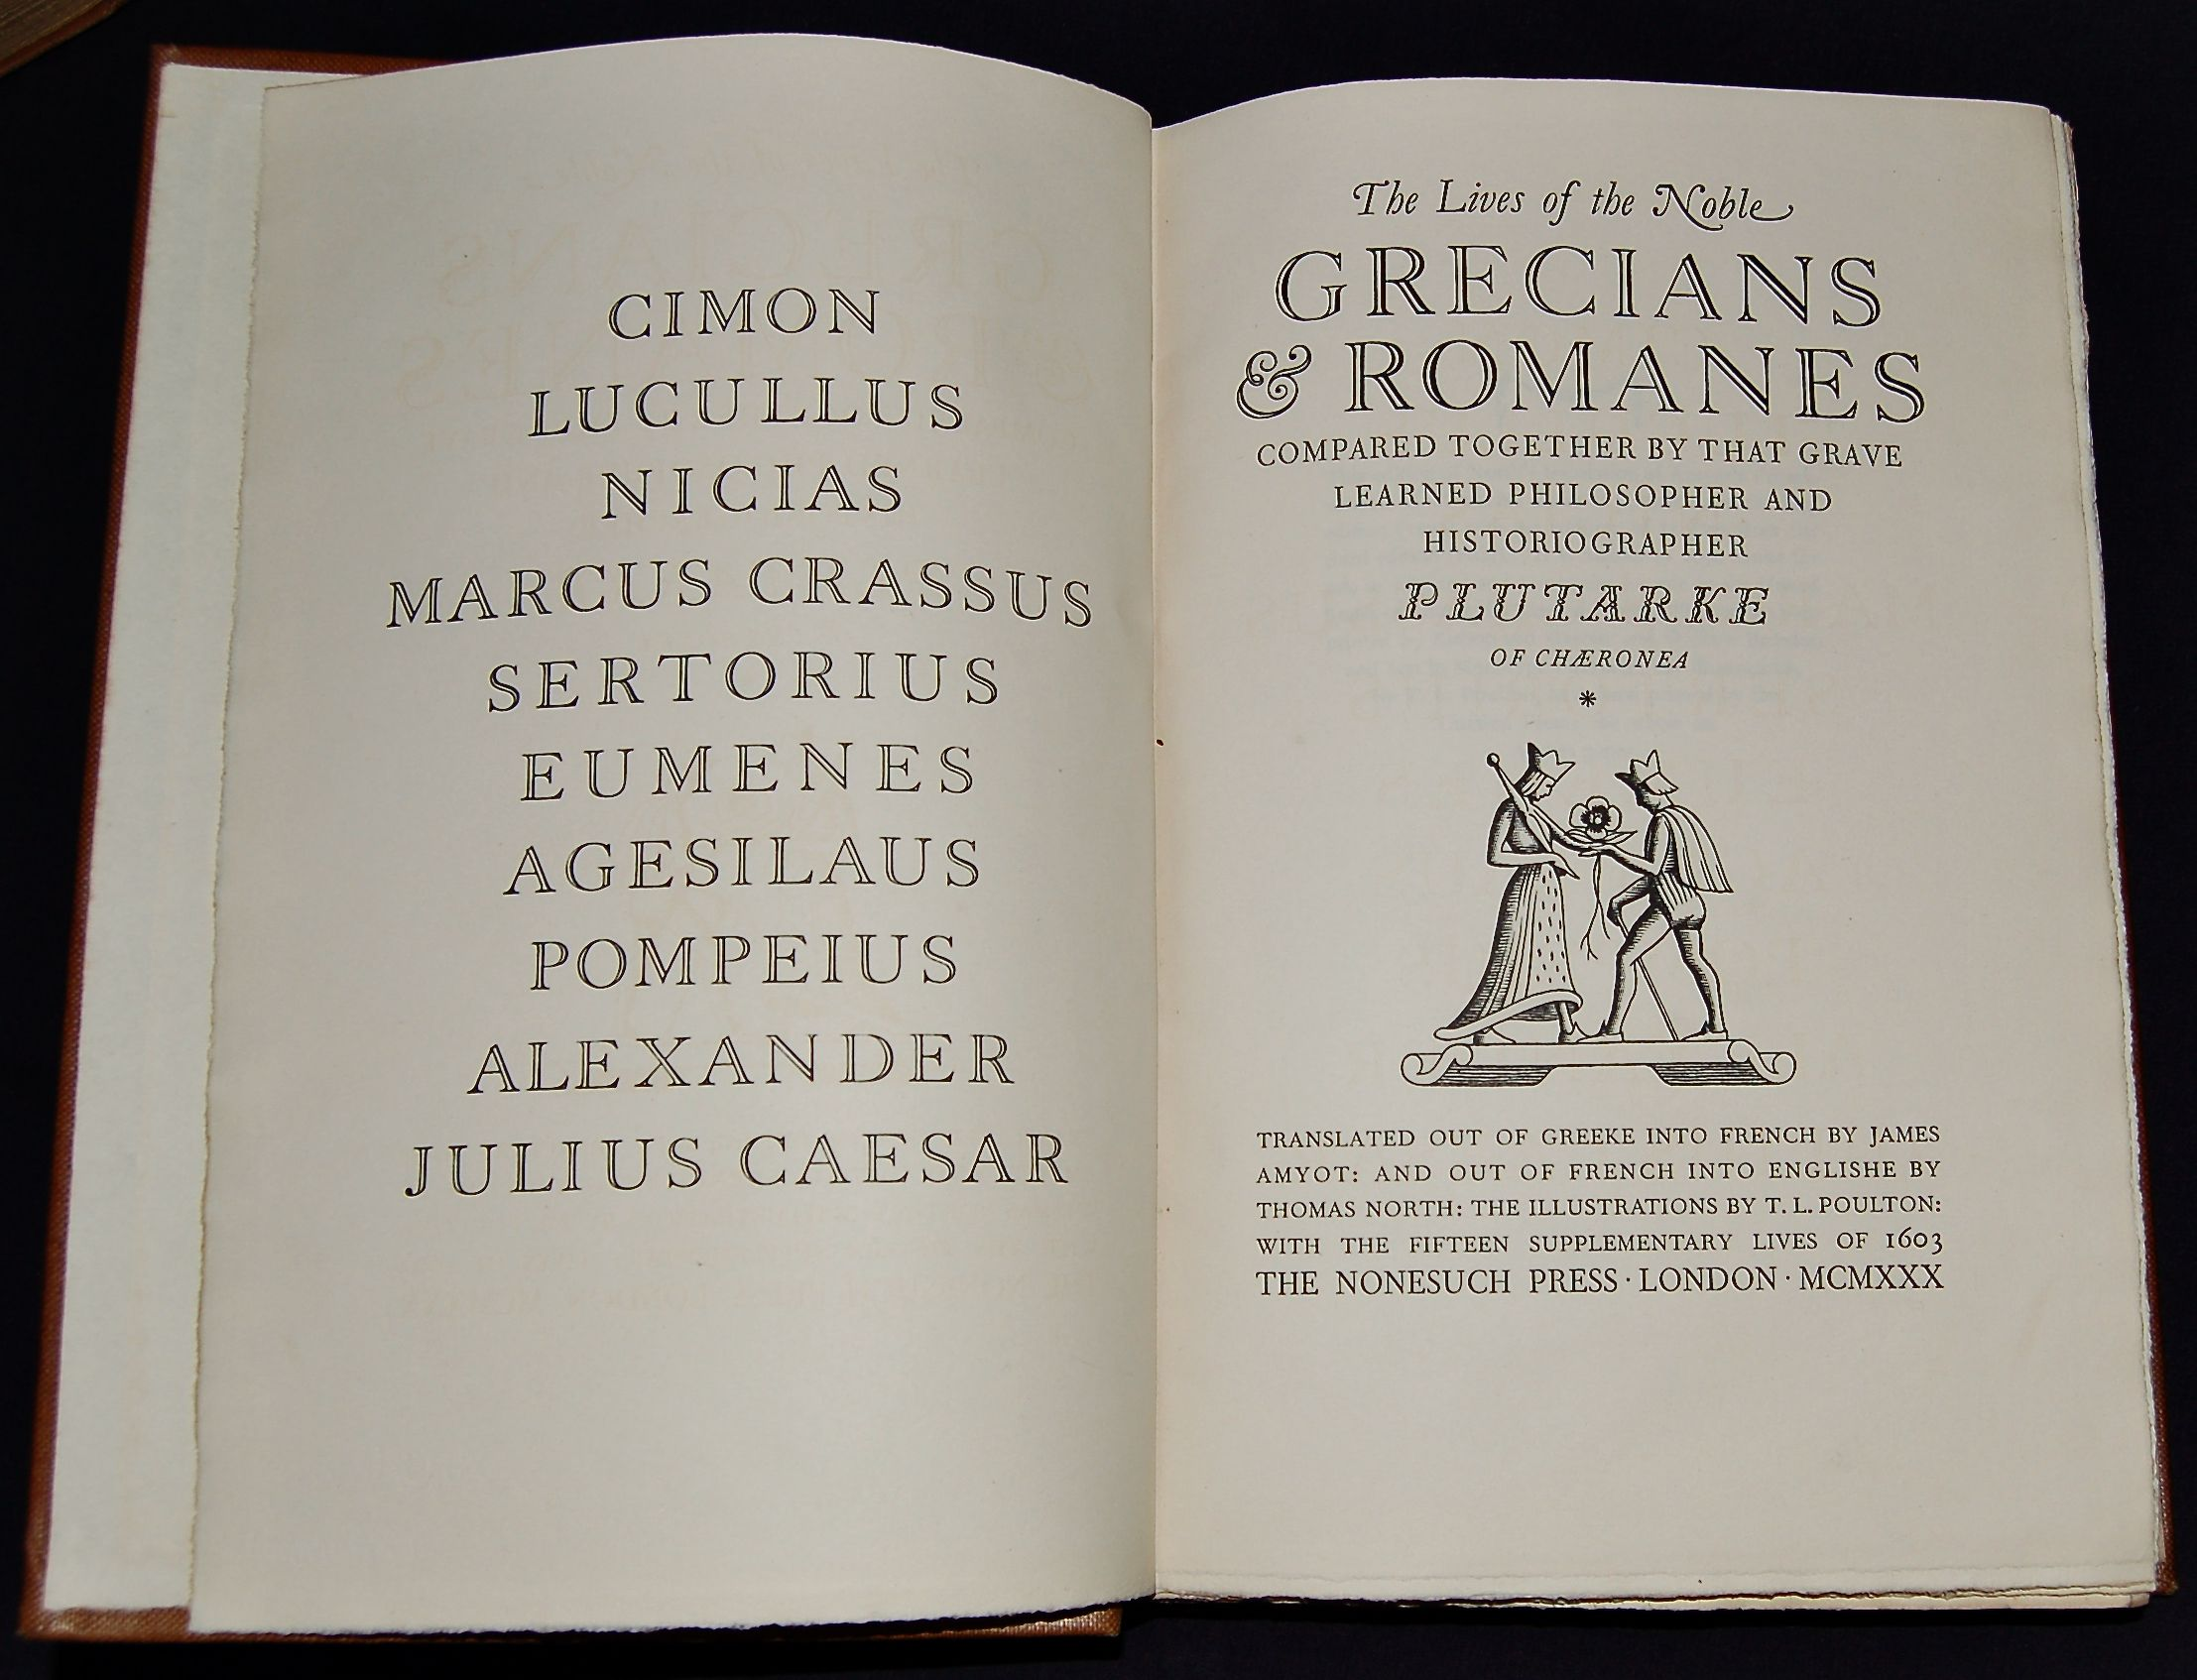 The Lives of the Noble Grecians & Romanes Compared together by that Grave Learned Philosopher and Historiographer Plutarke of Chaeronea [Plutarch's Lives]. Nonesuch Press